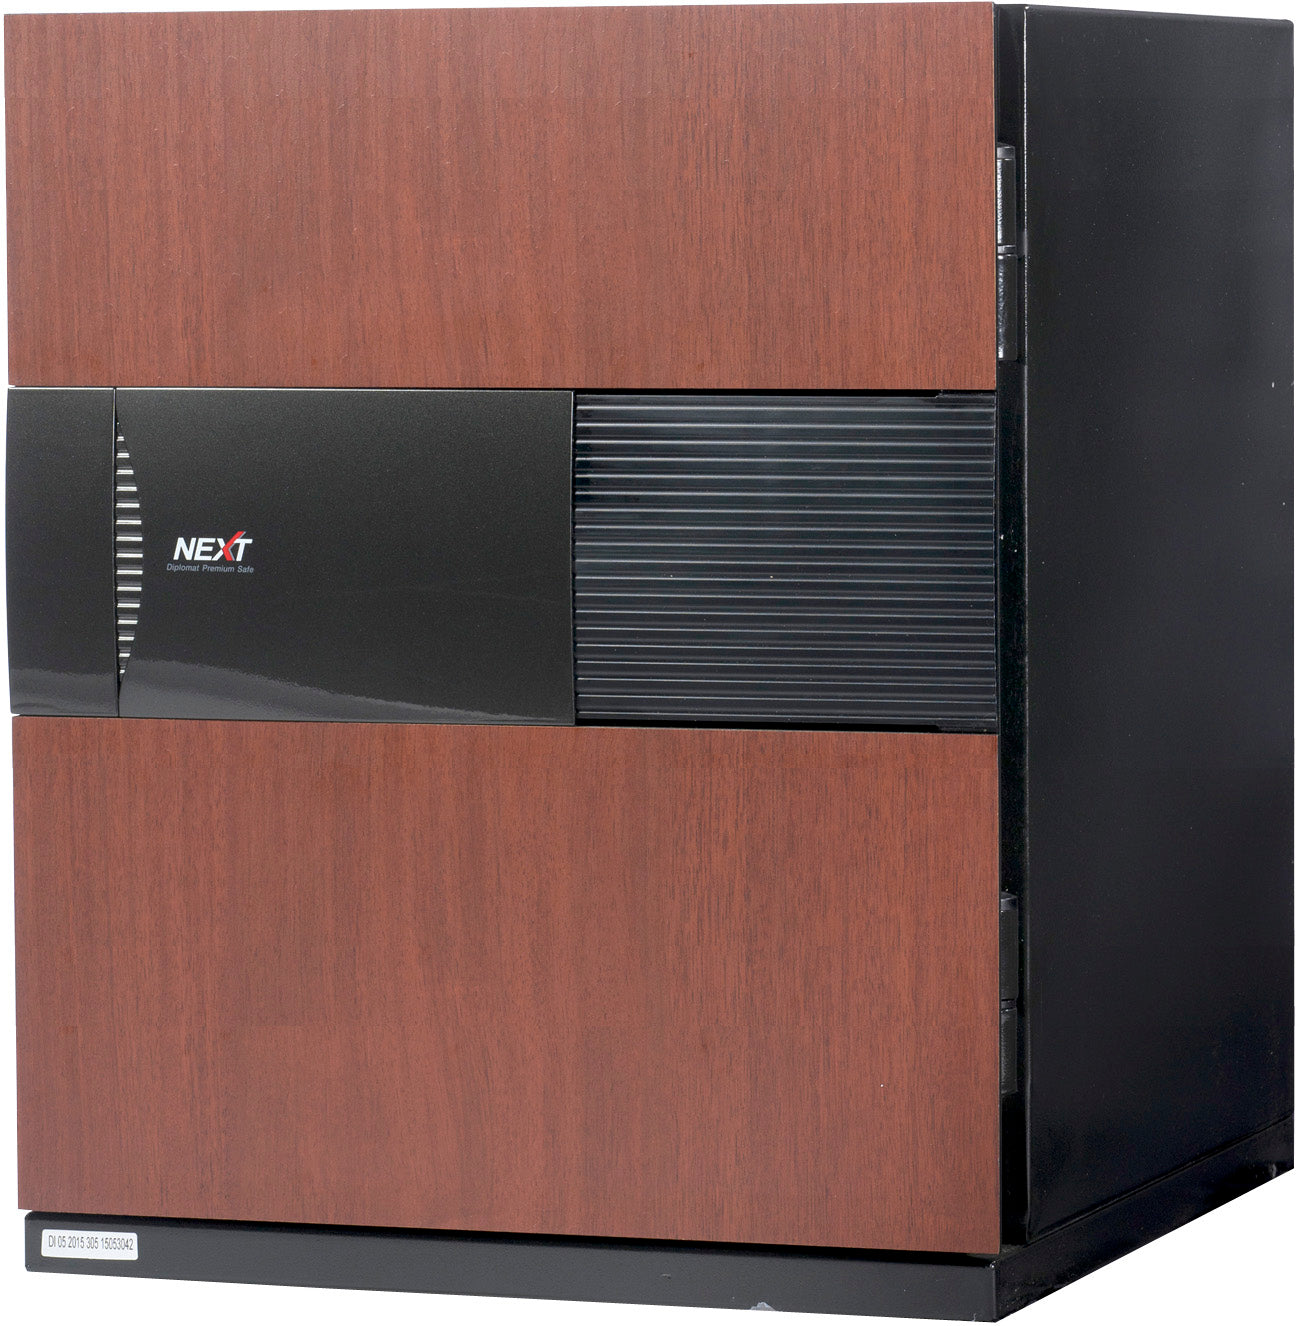 NEXT Digital Lock Luxury Fire Resistant Safe with Cherry Door